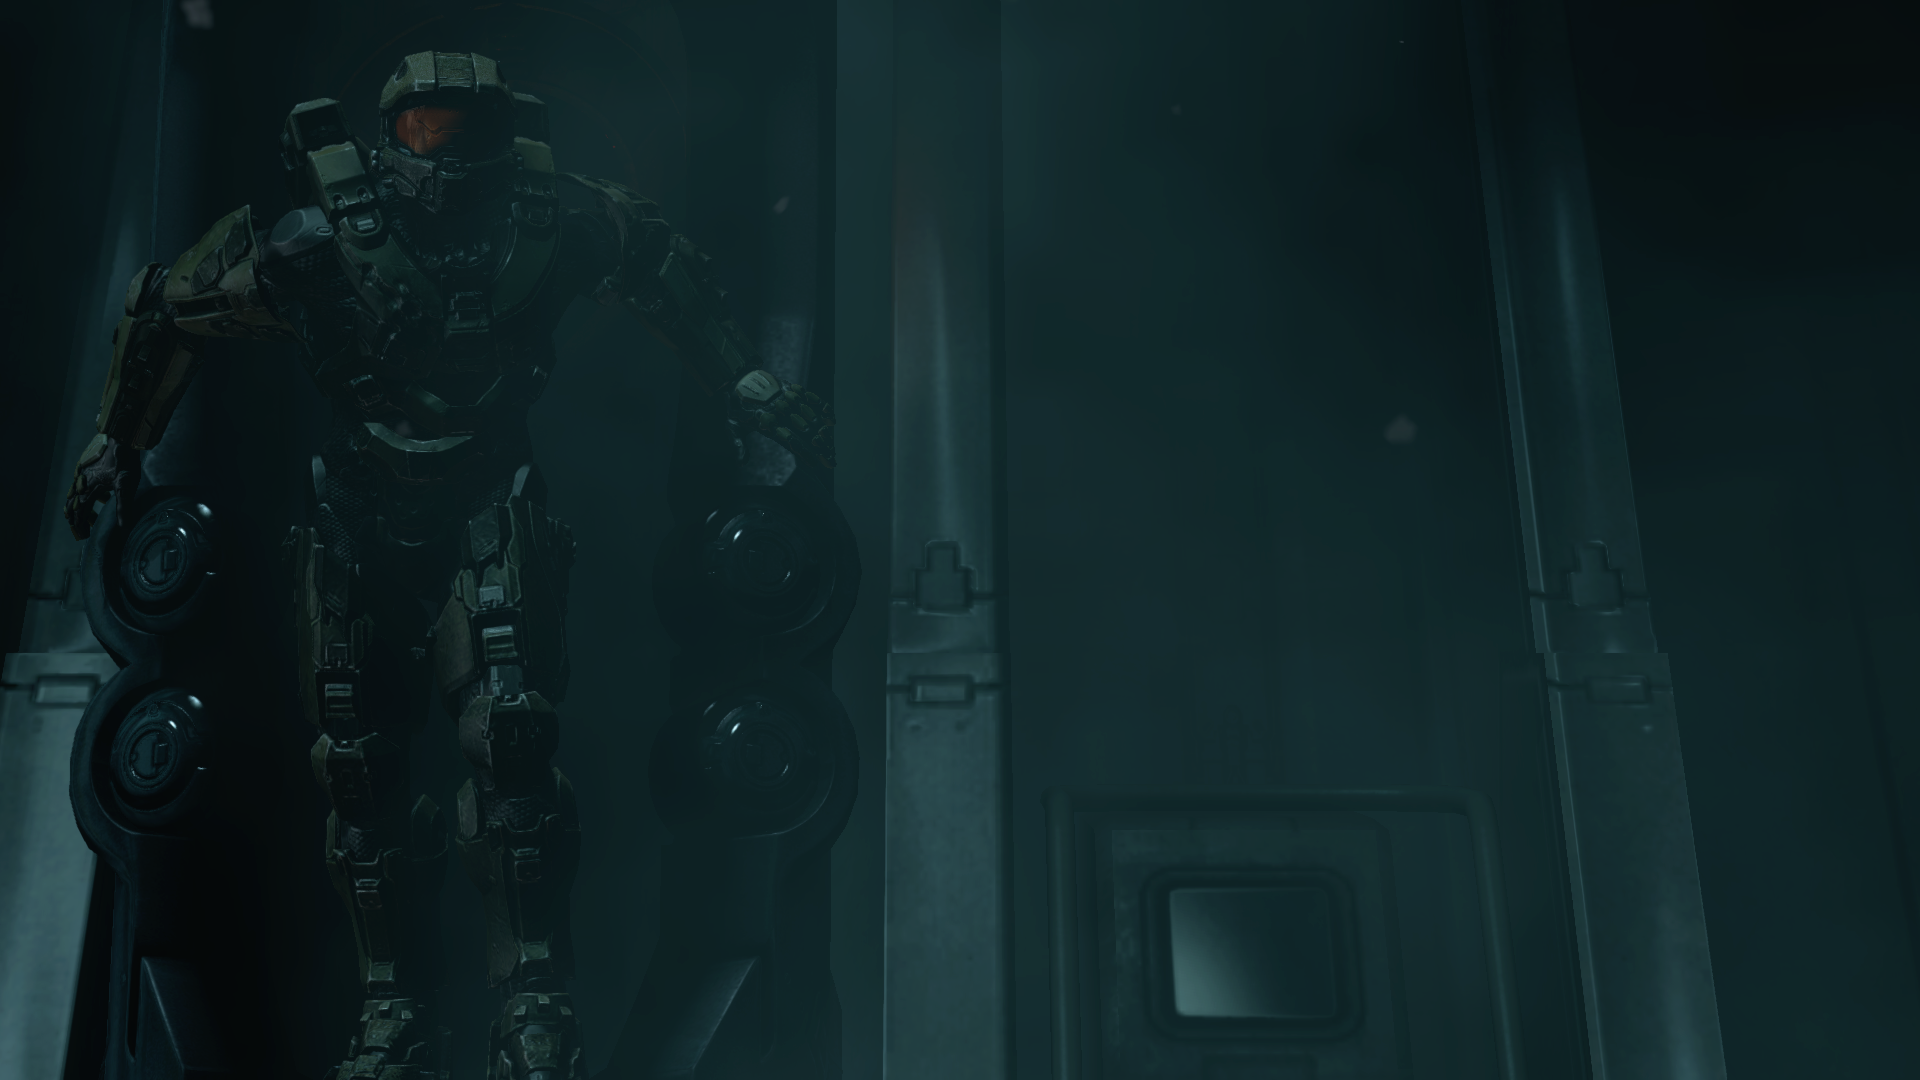 The Master Chief: A Character Study – Halo 4 – haruspis